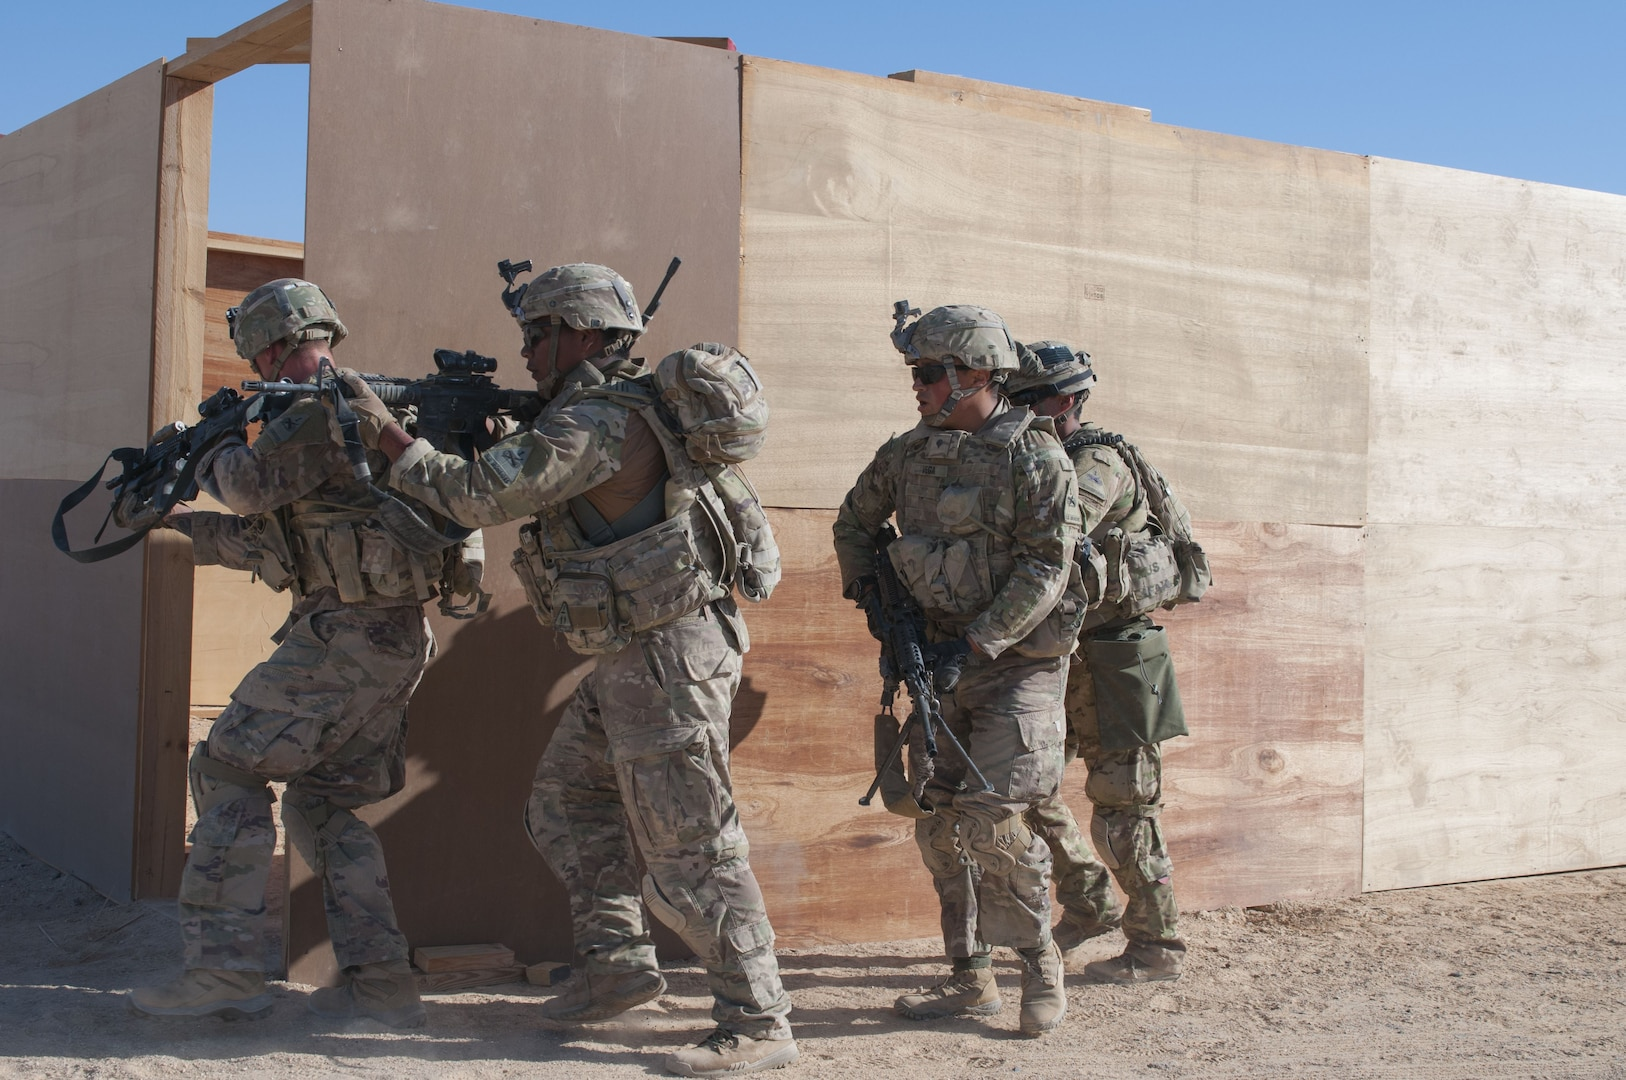 Infantry squad with 2nd Armored Brigade Combat Team, 1st Armored Division, assaults first of two buildings during platoon live-fire lane, January 28, 2018, during Omani-U.S. exercise Inferno Creek 2018, near Thumrait, Oman (U.S. Army/David L. Nye)